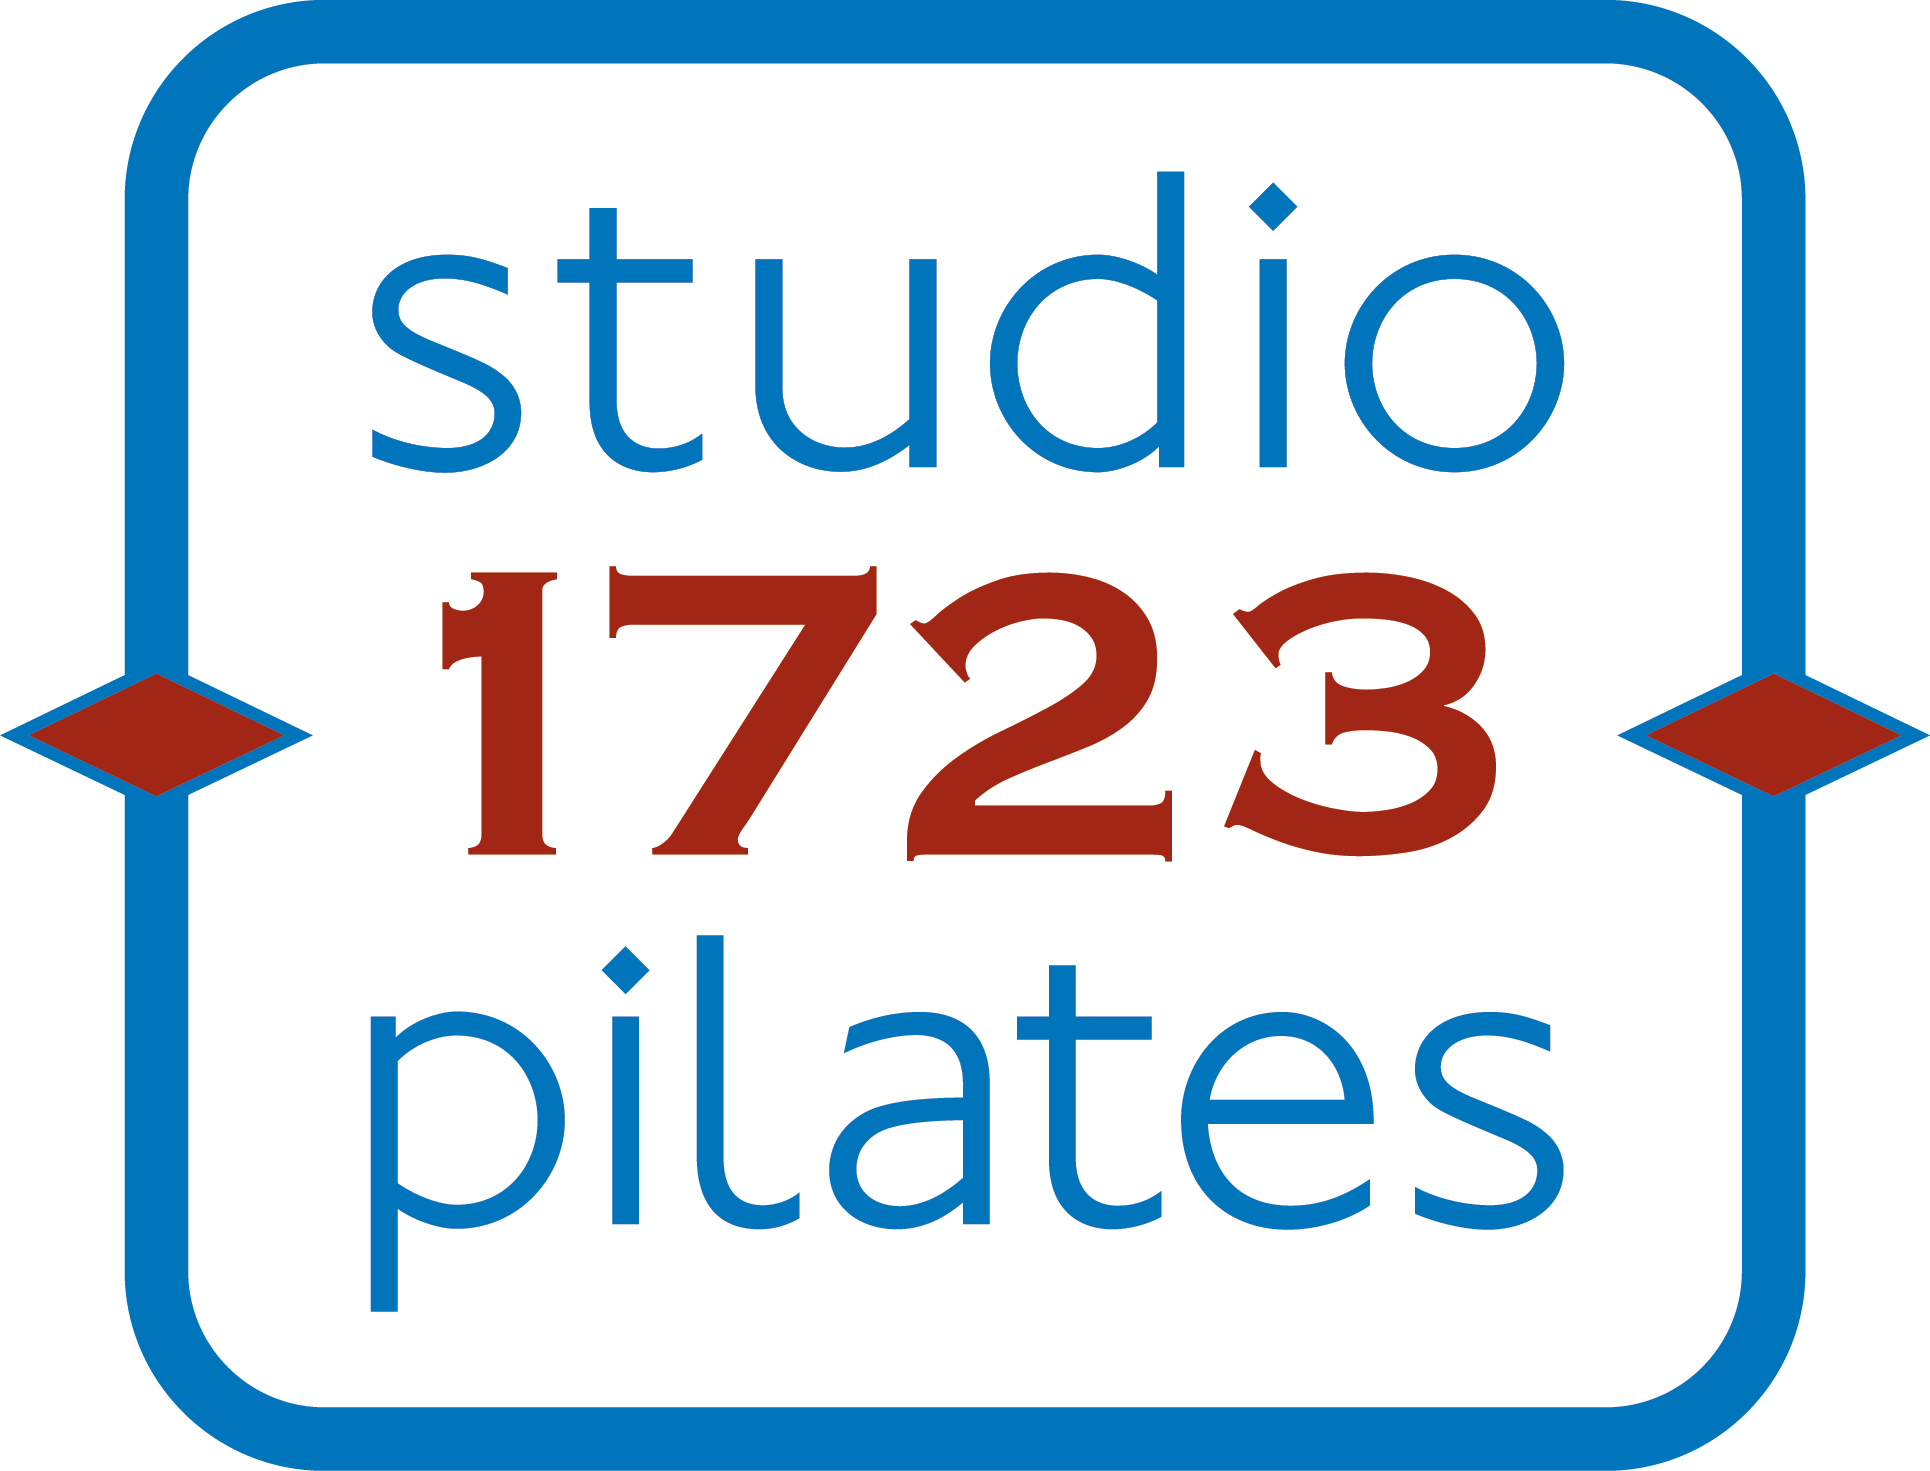 Studio_1723_Pilates_Logo2